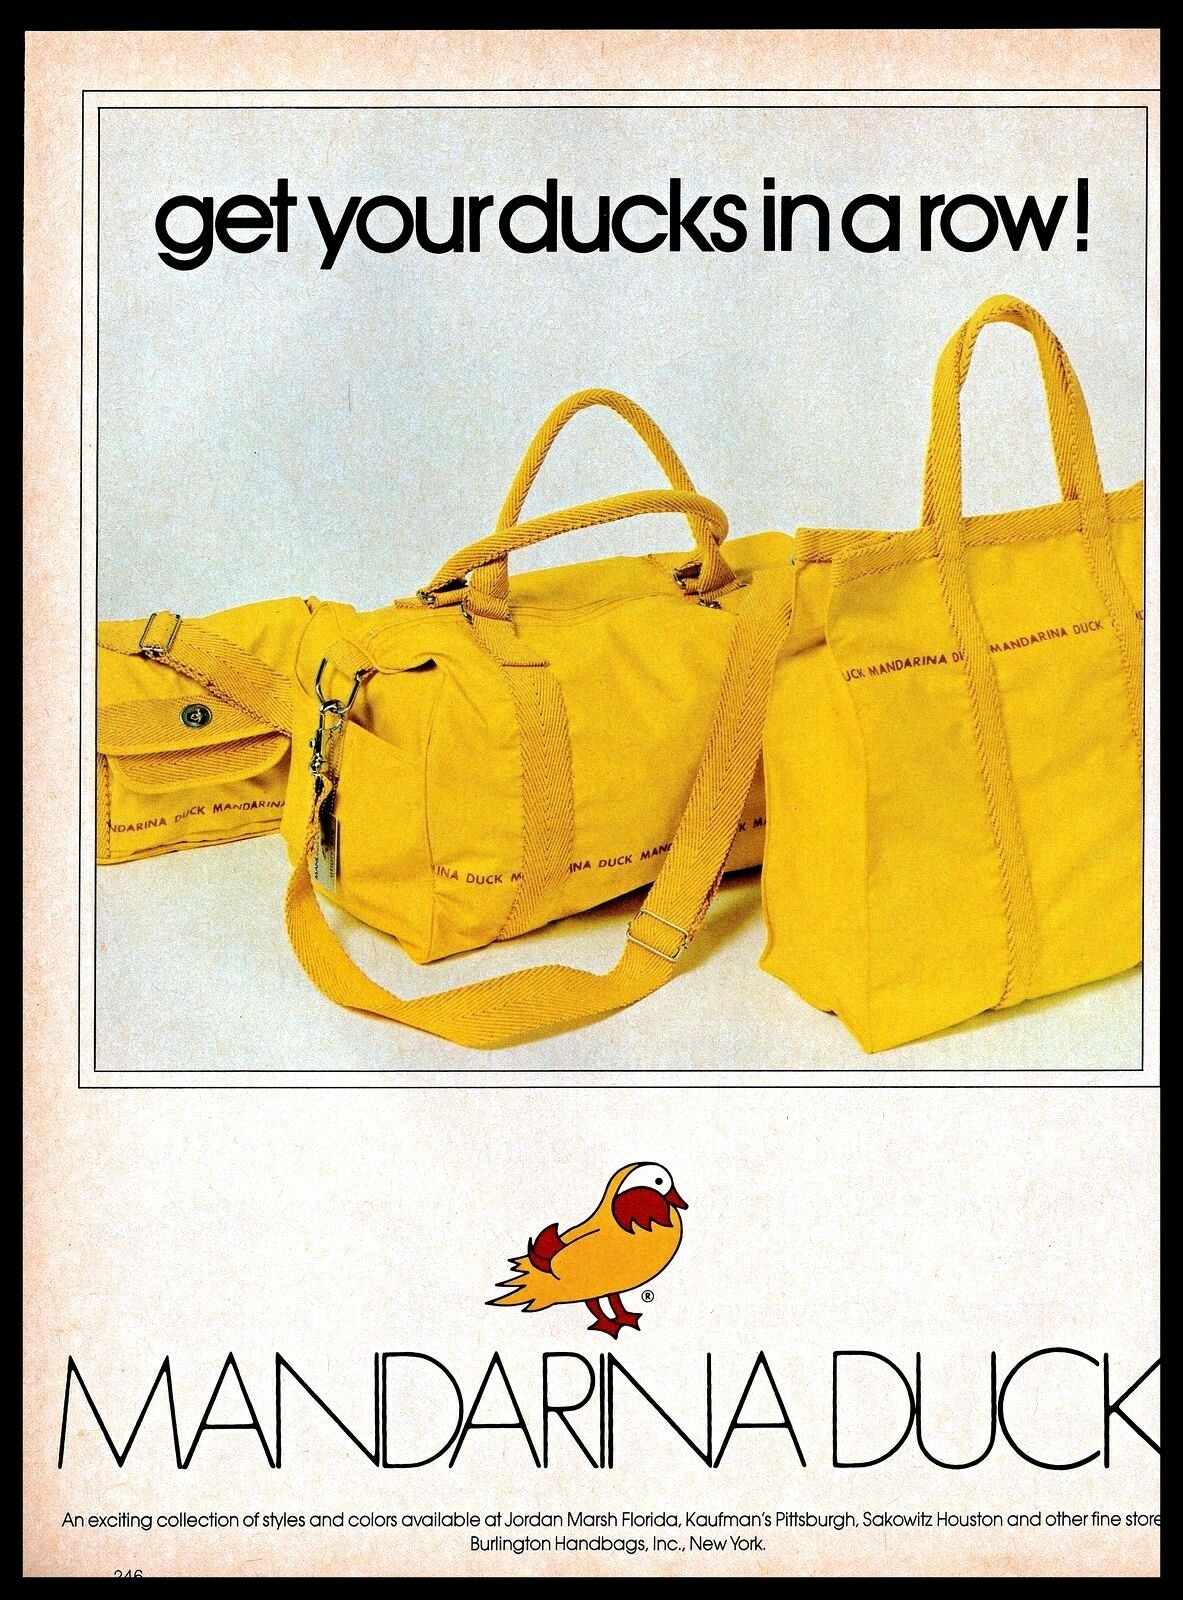 1982 Mandarina Duck Collection Burlington Handbags Yellow Bags Vintage 1980s Ad